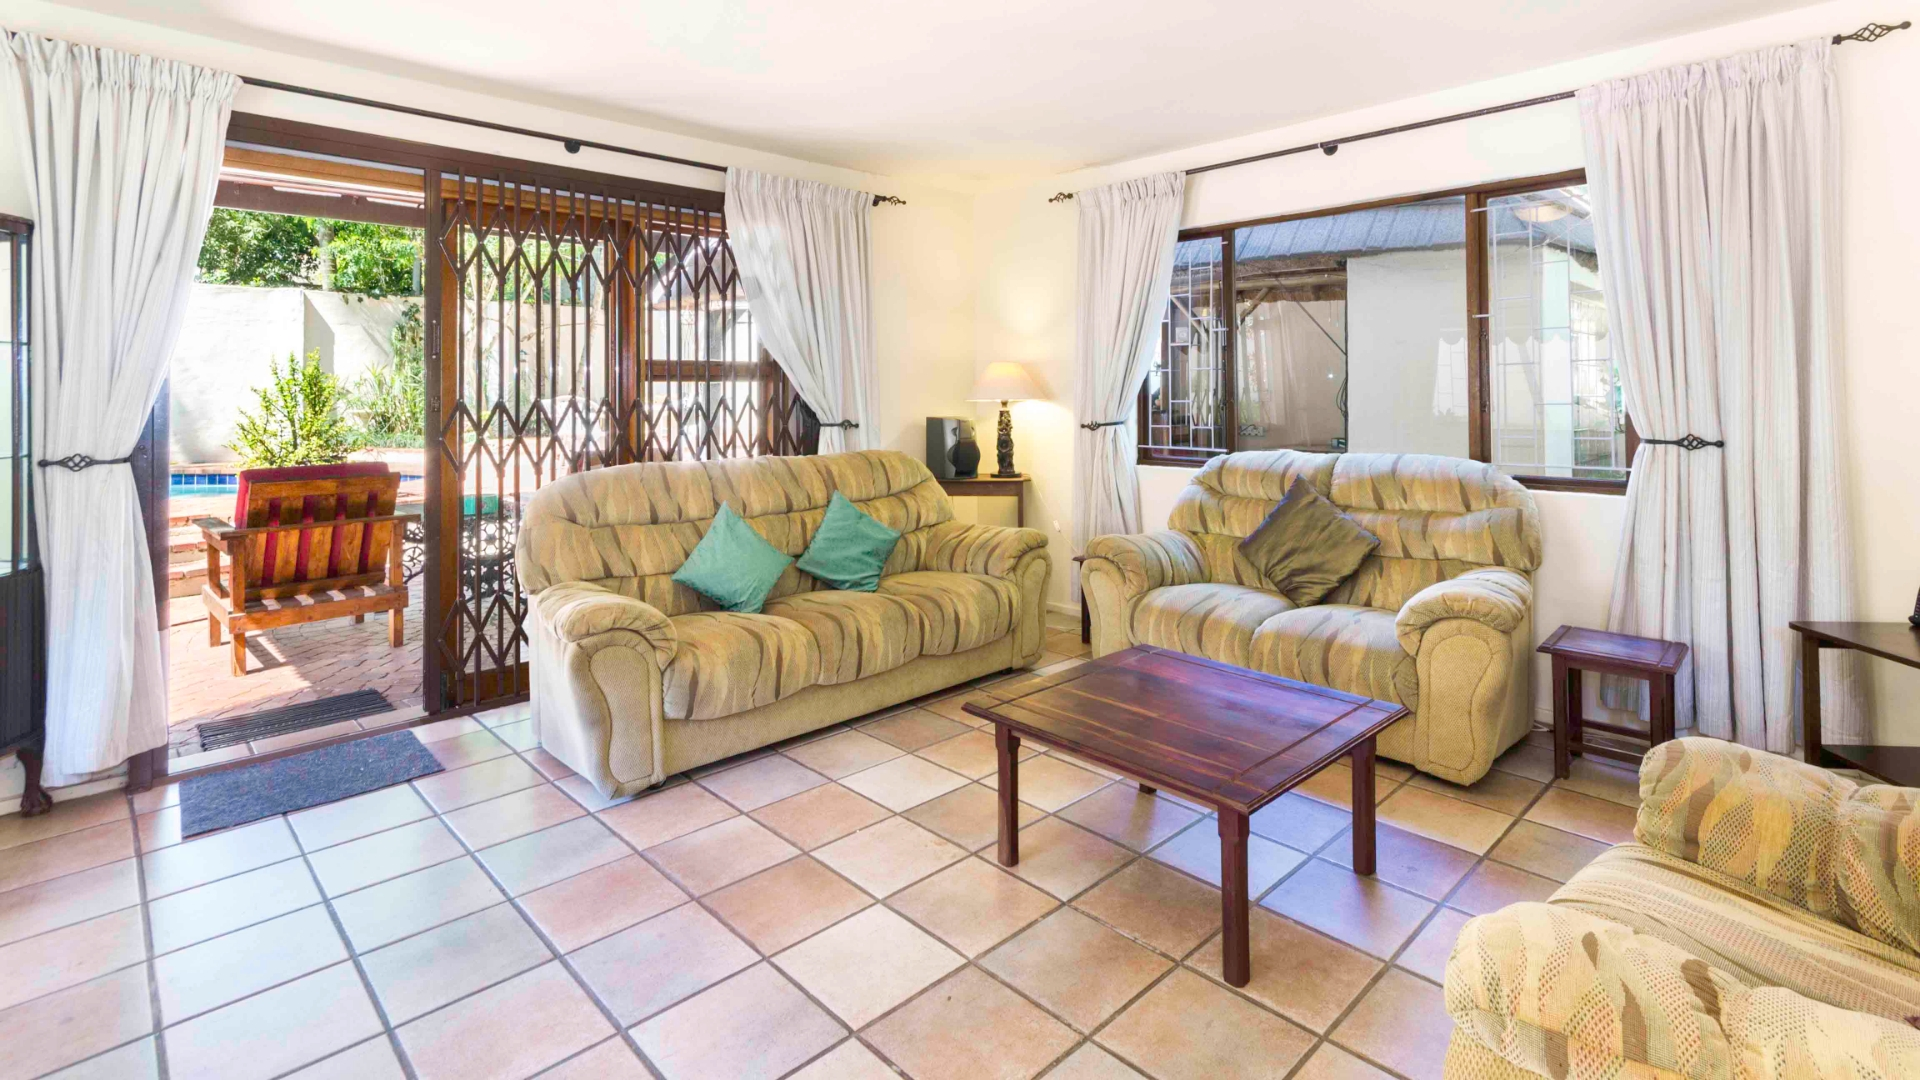 4 Bedroom House in Durban North, Durban For Sale for R 2,449,000 #1849484